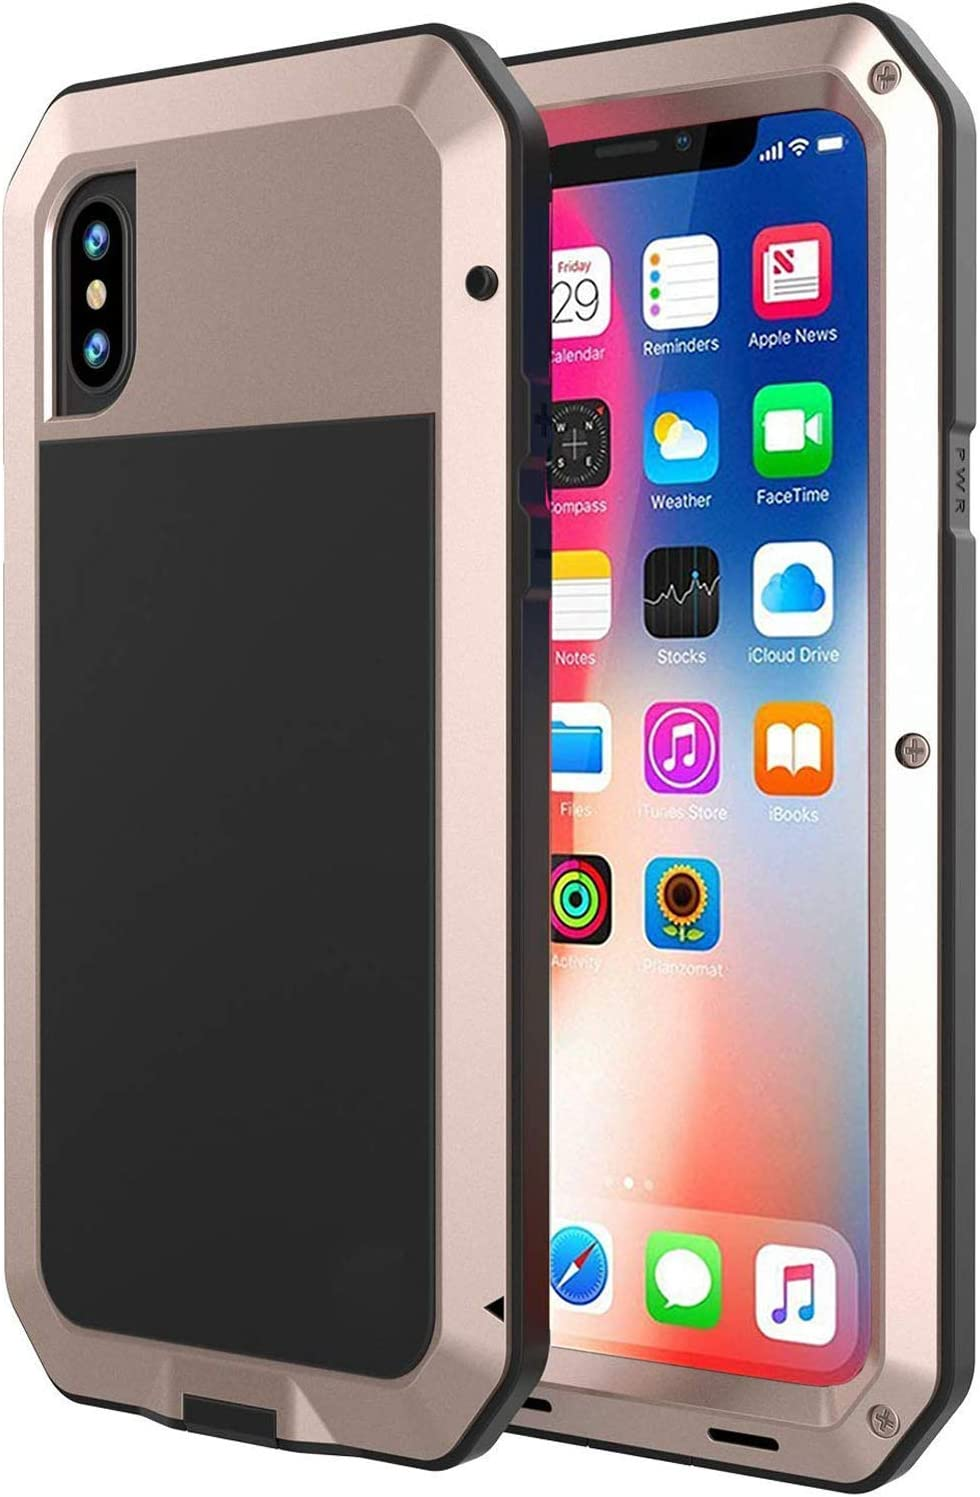 Metal Case for iPhone X Xs with Screen Protector R-JUST Heavy Duty Shockproof Cover with Gorilla Glass Extreme Snowproof Dustproof Case for iPhone 10 Xs 5.8 X /& XS, Blue